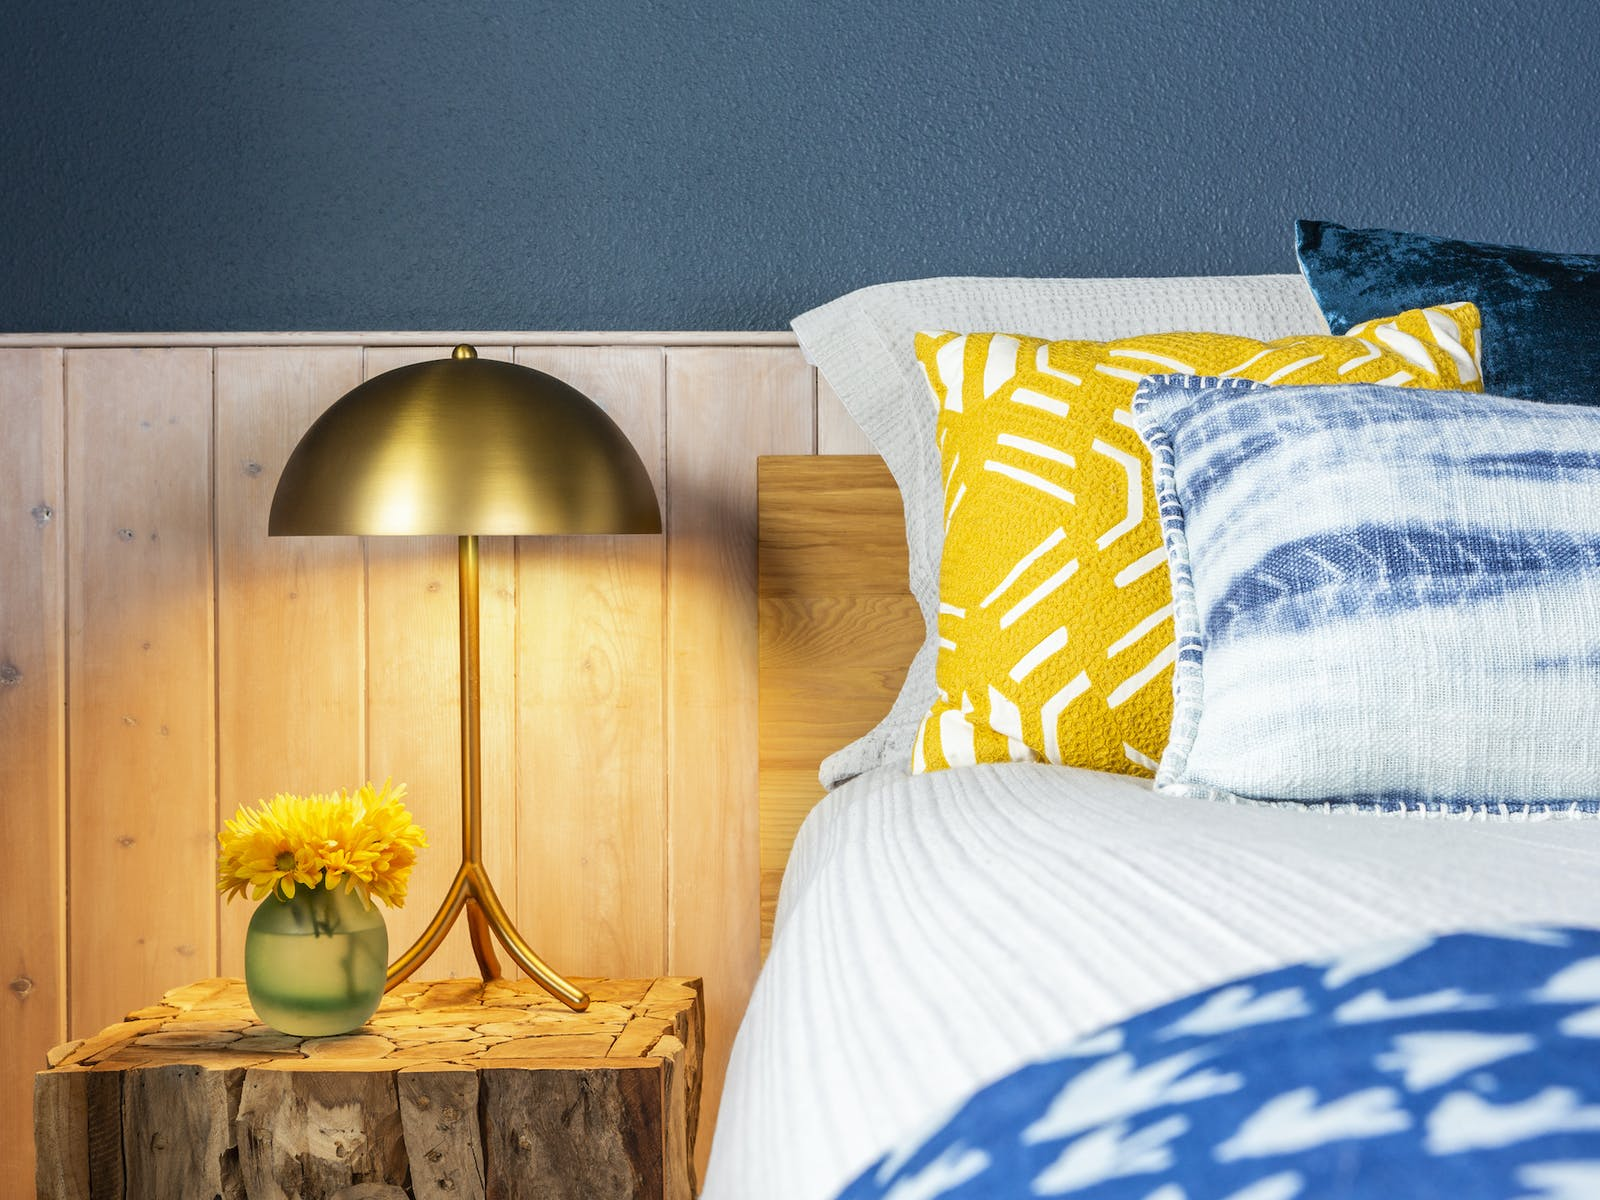 Bedside table with lamp and flowers in vacation rental bedroom